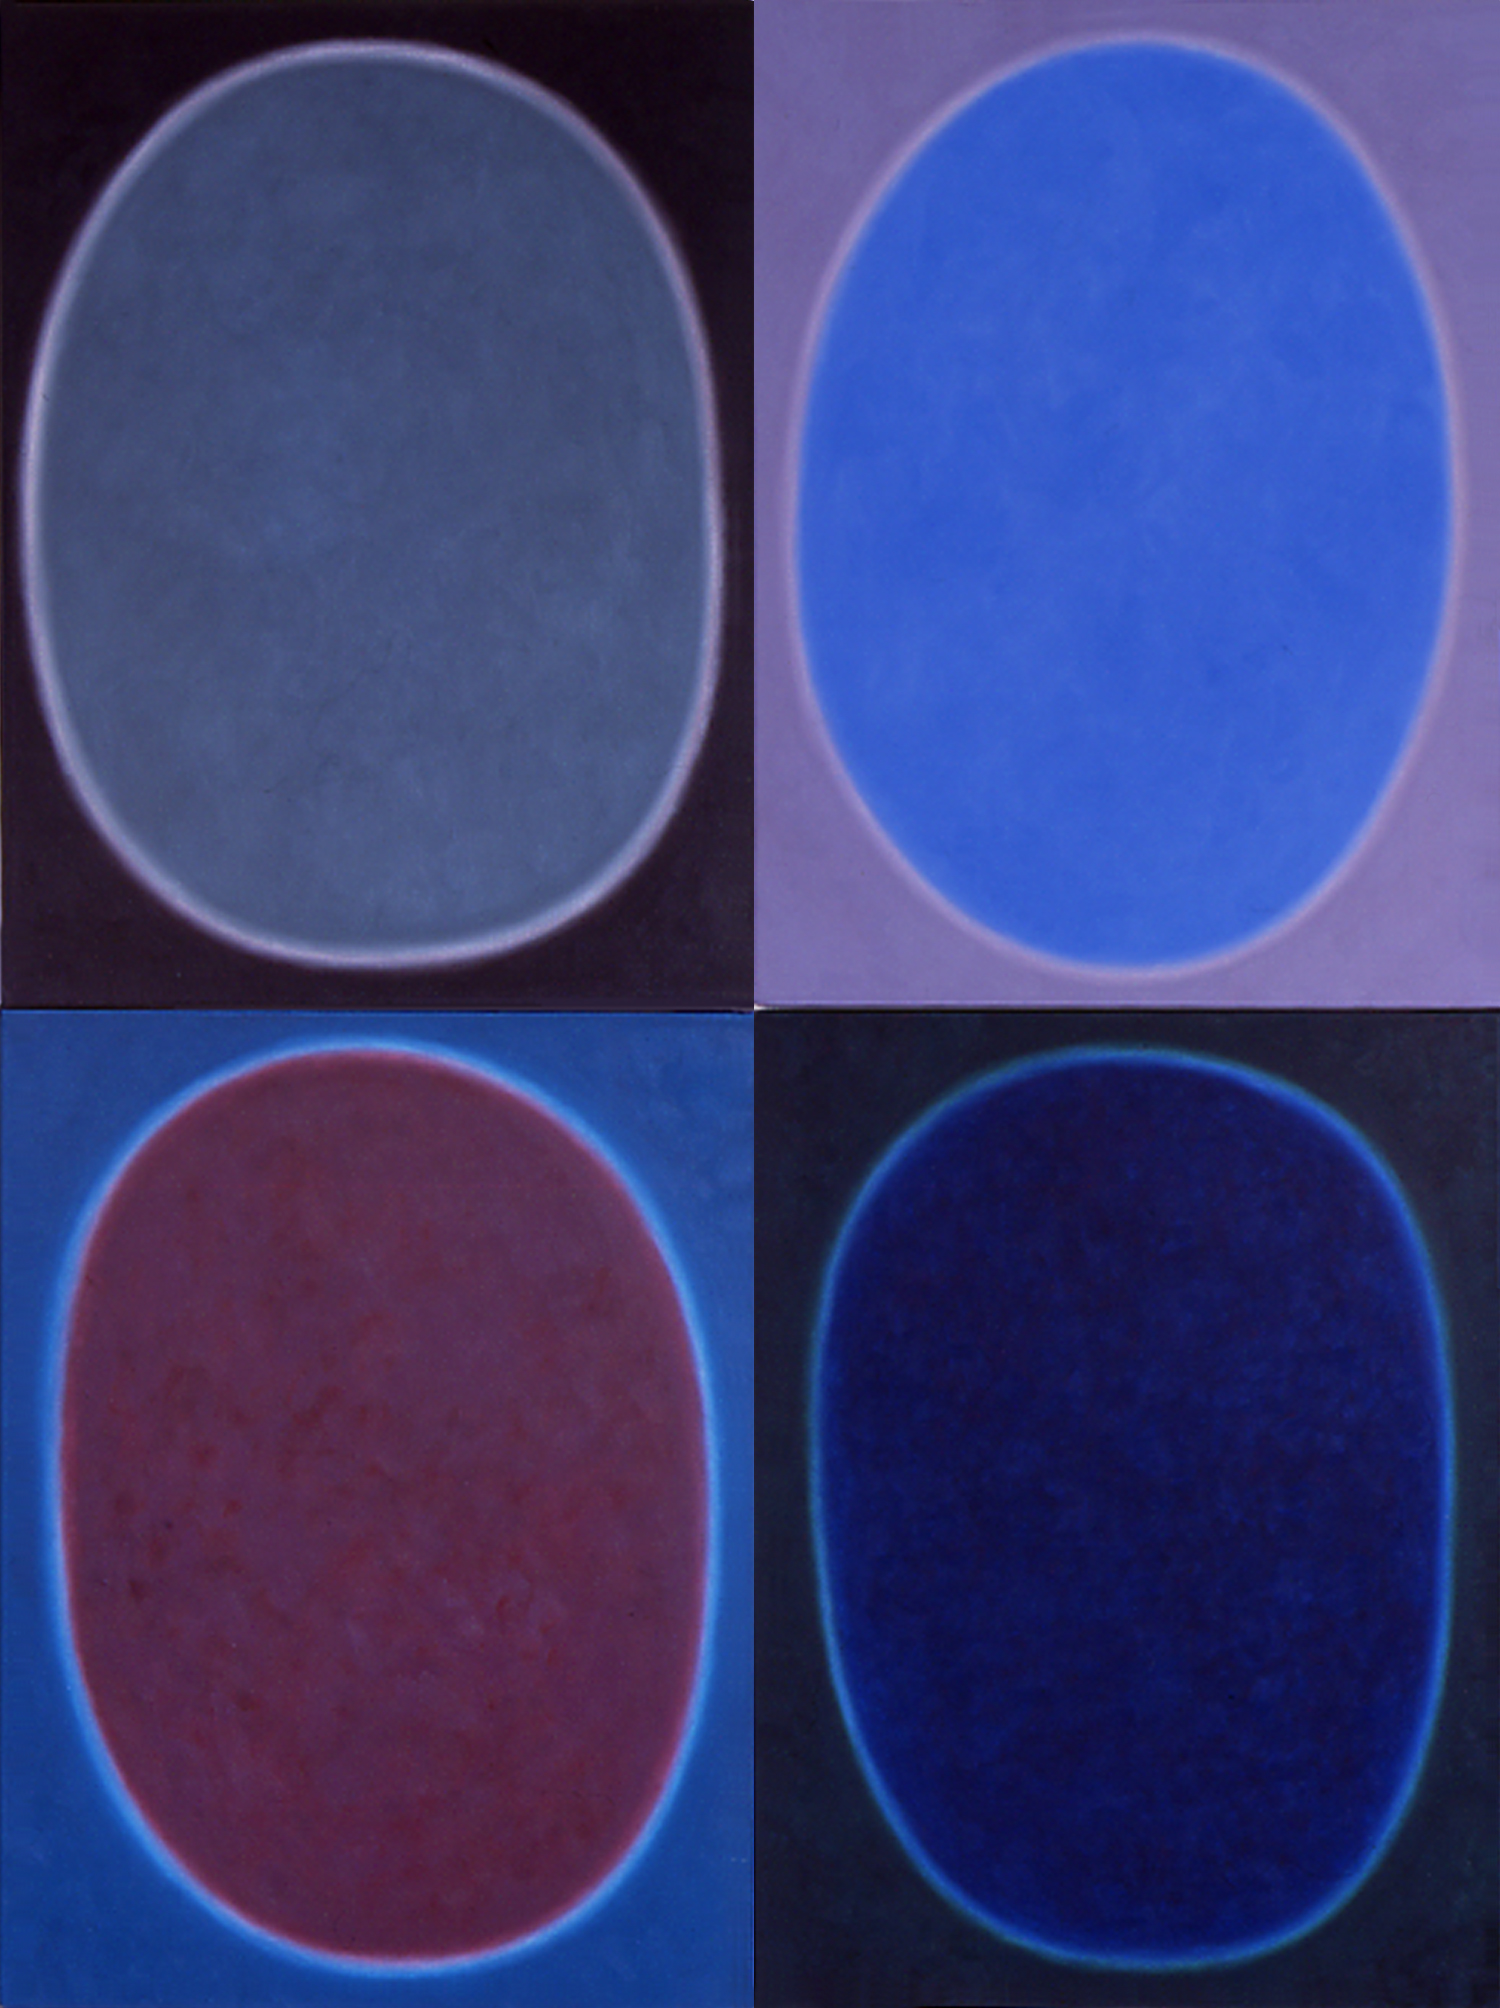 """Silent 9, oil on canvas, 2001, series of 4 panels W18"""" x H24"""" each, total format W36"""" x H48"""". Private collection."""